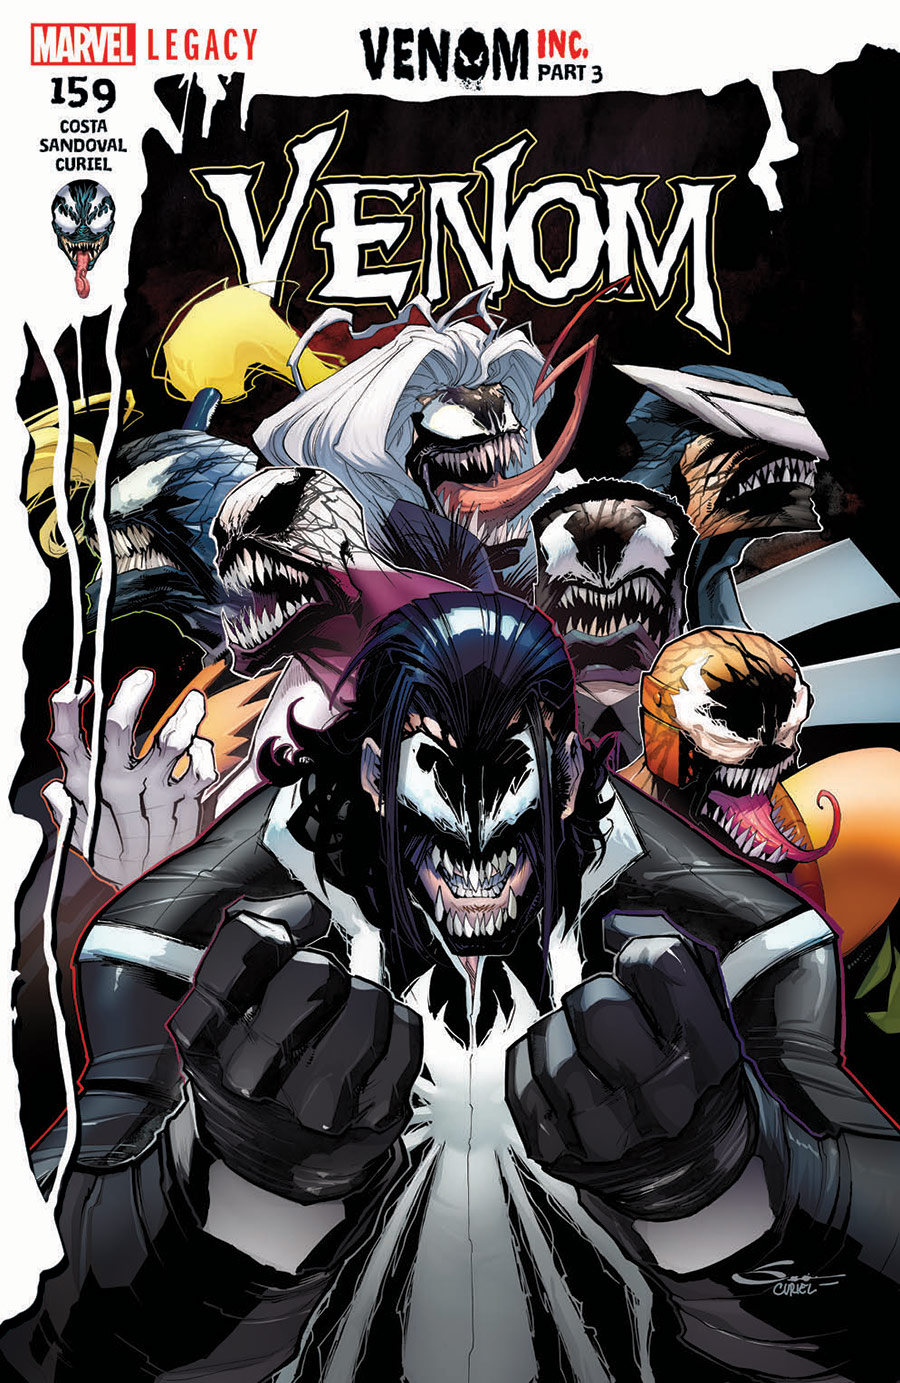 VENOM #159: VENOM INC PART 3